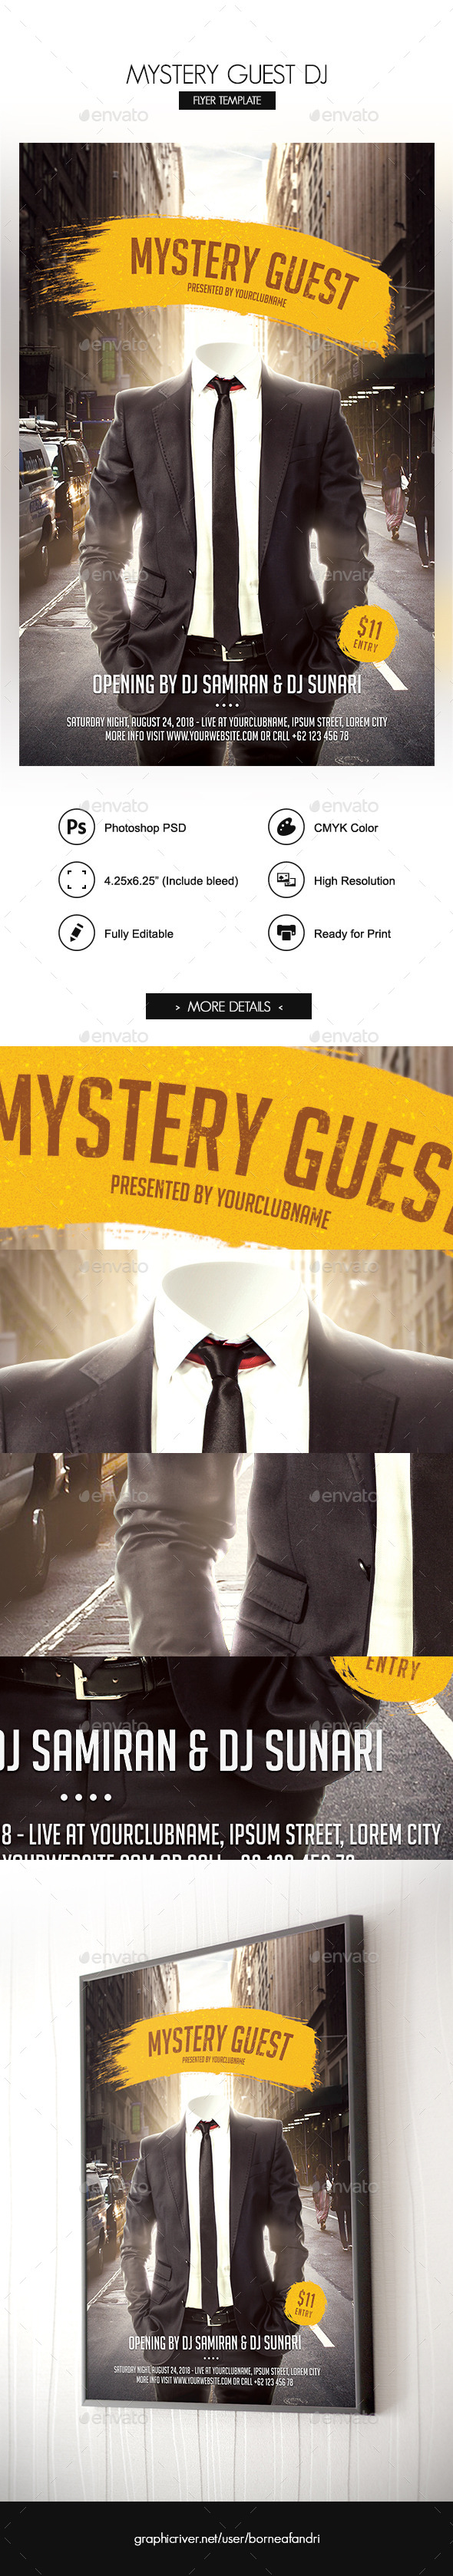 Mystery Guest DJ Flyer - Clubs & Parties Events